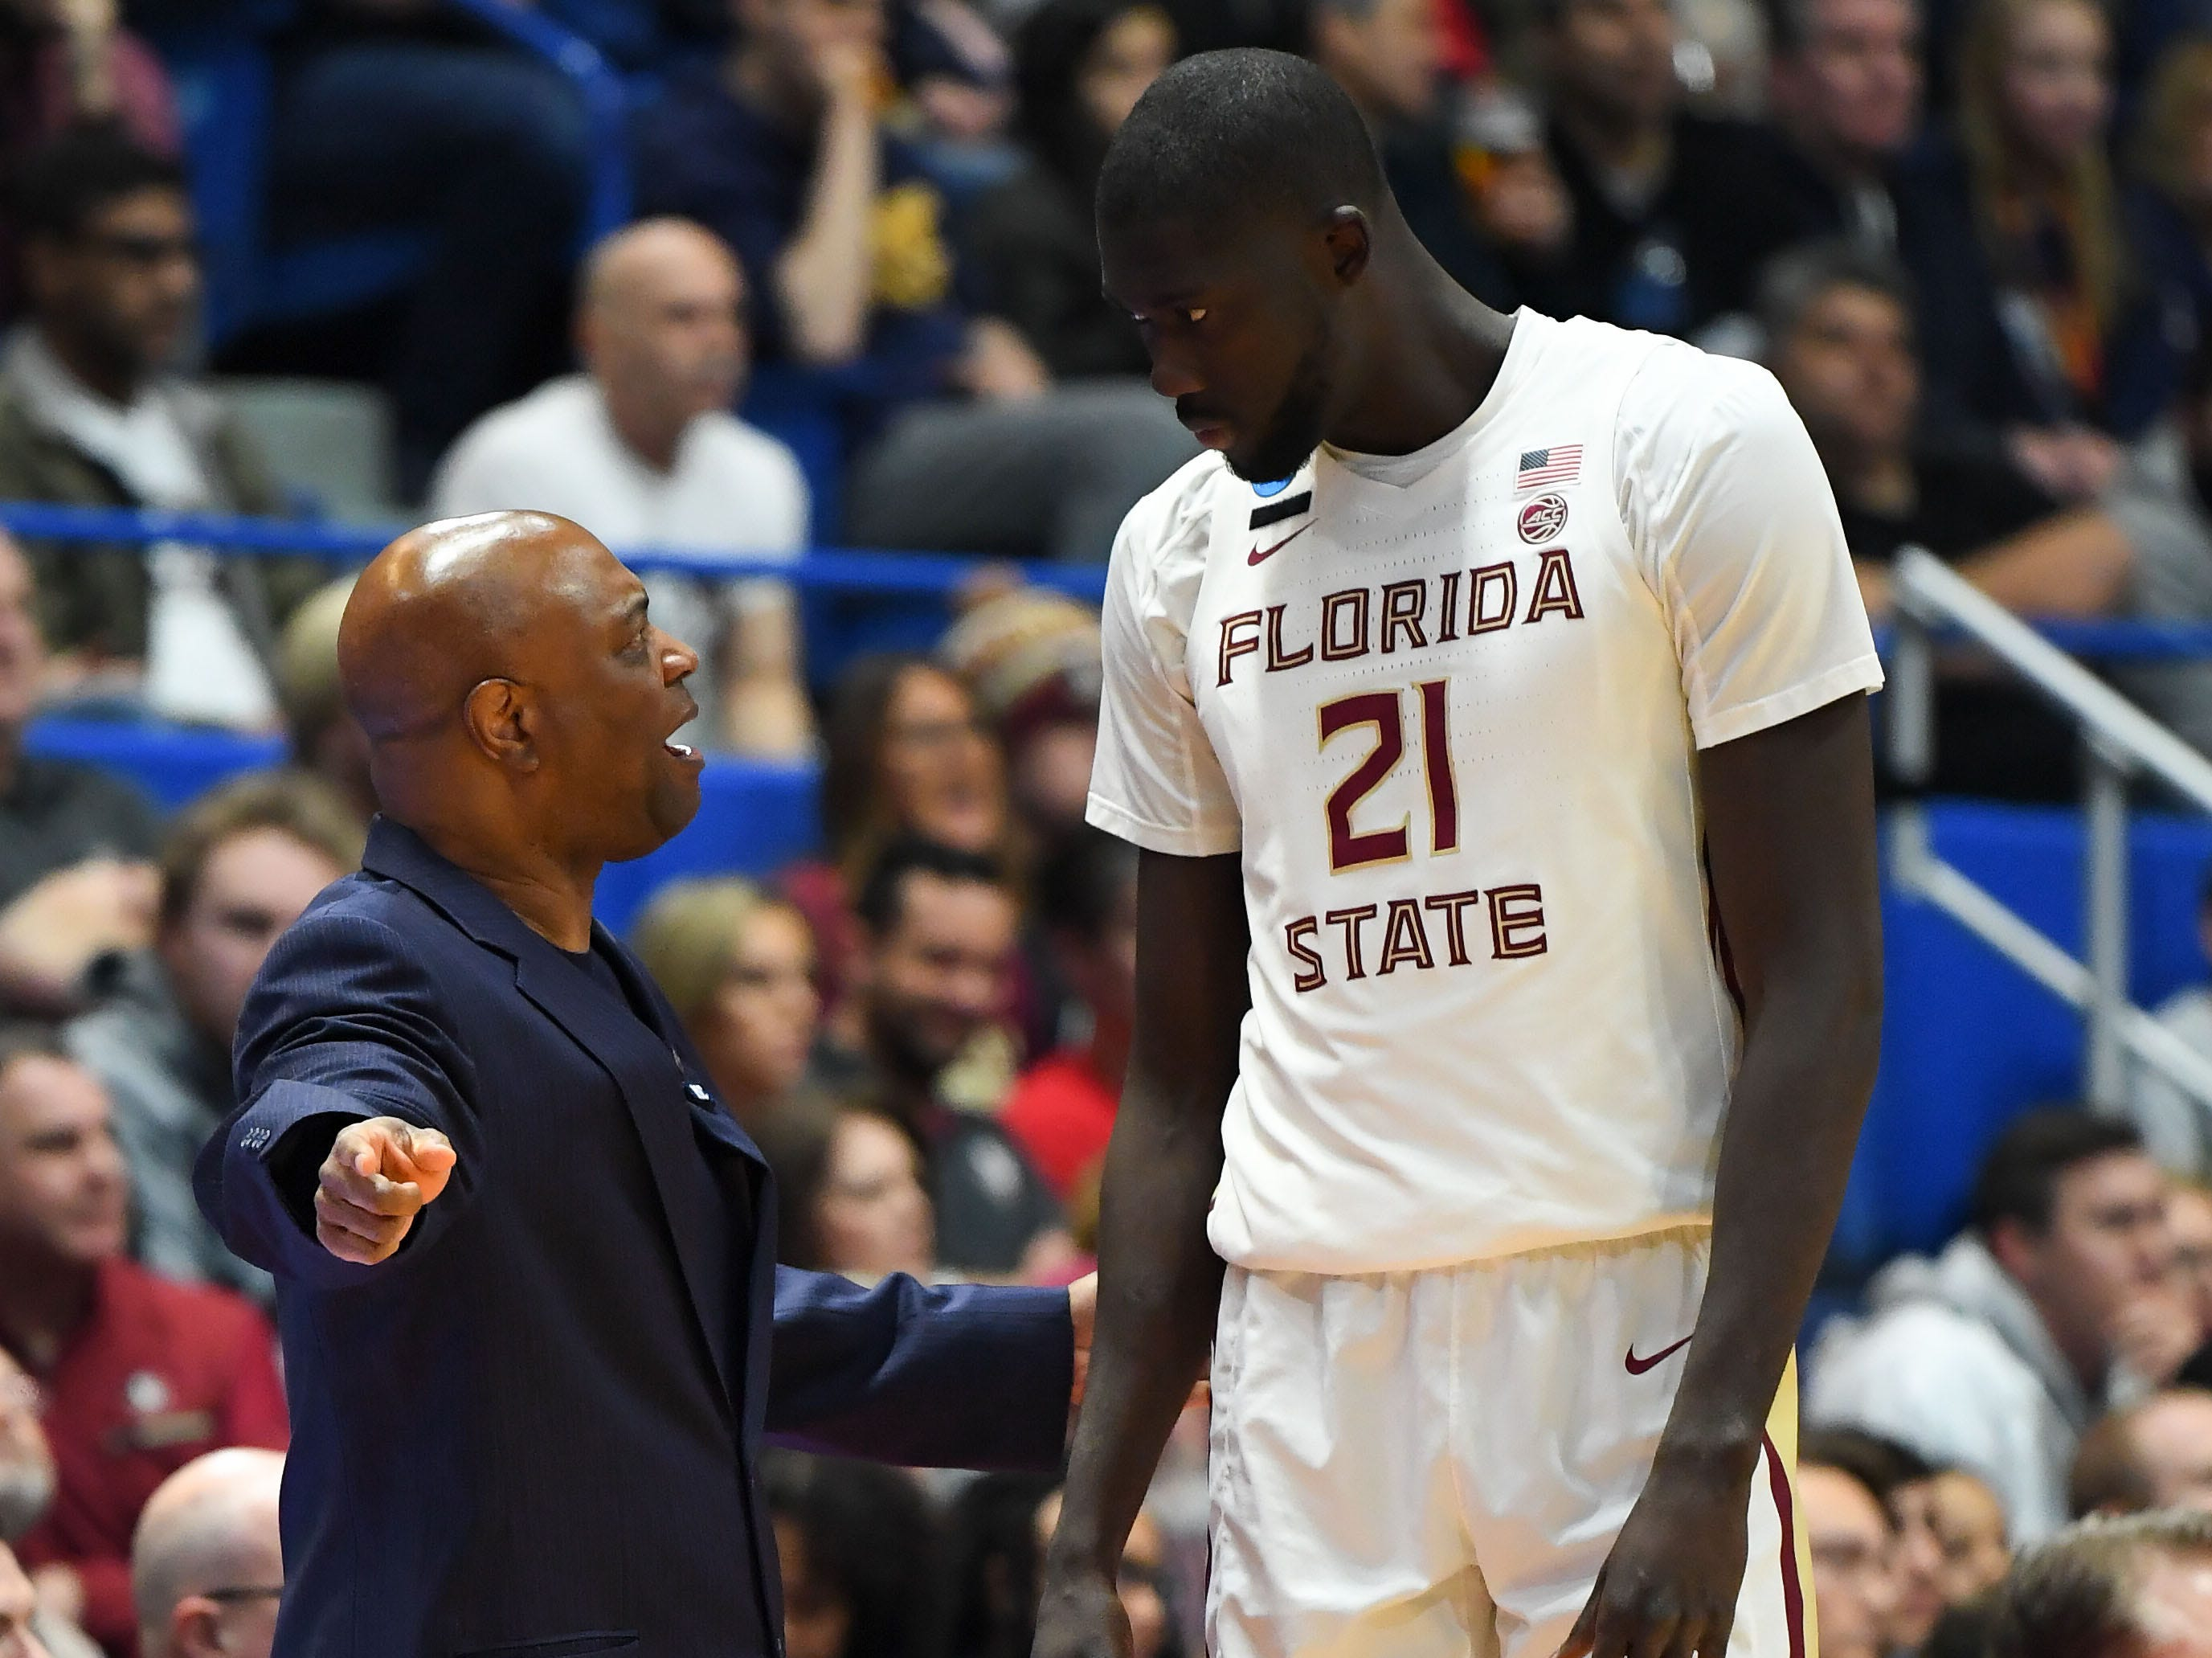 Mar 23, 2019; Hartford, CT, USA; Florida State Seminoles head coach Leonard Hamilton talks with center Christ Koumadje (21) during the first half of a game against the Murray State Racers in the second round of the 2019 NCAA Tournament at XL Center. Mandatory Credit: Robert Deutsch-USA TODAY Sports